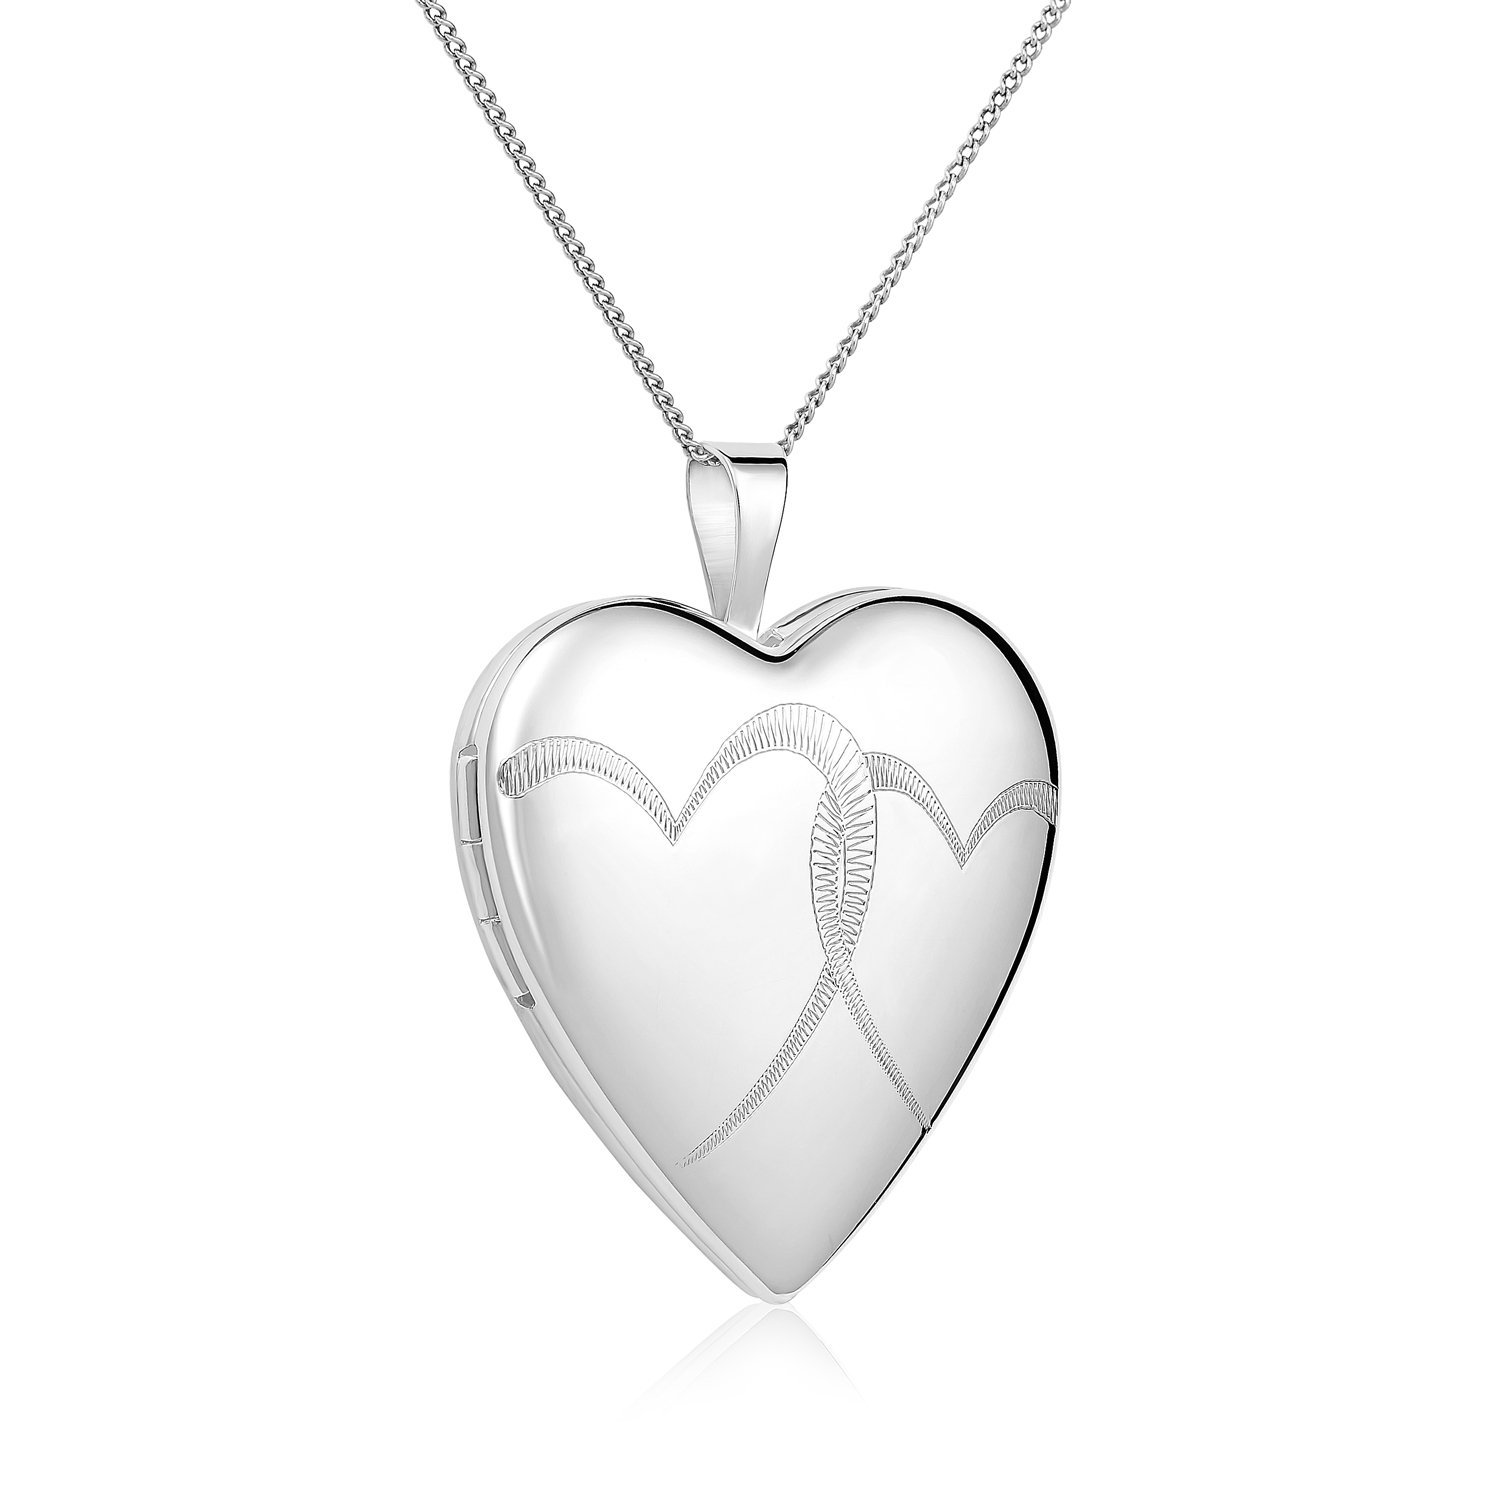 Regetta Jewelry Sterling Silver Double Hearts Heart Locket Pendant Necklace, 18'' By